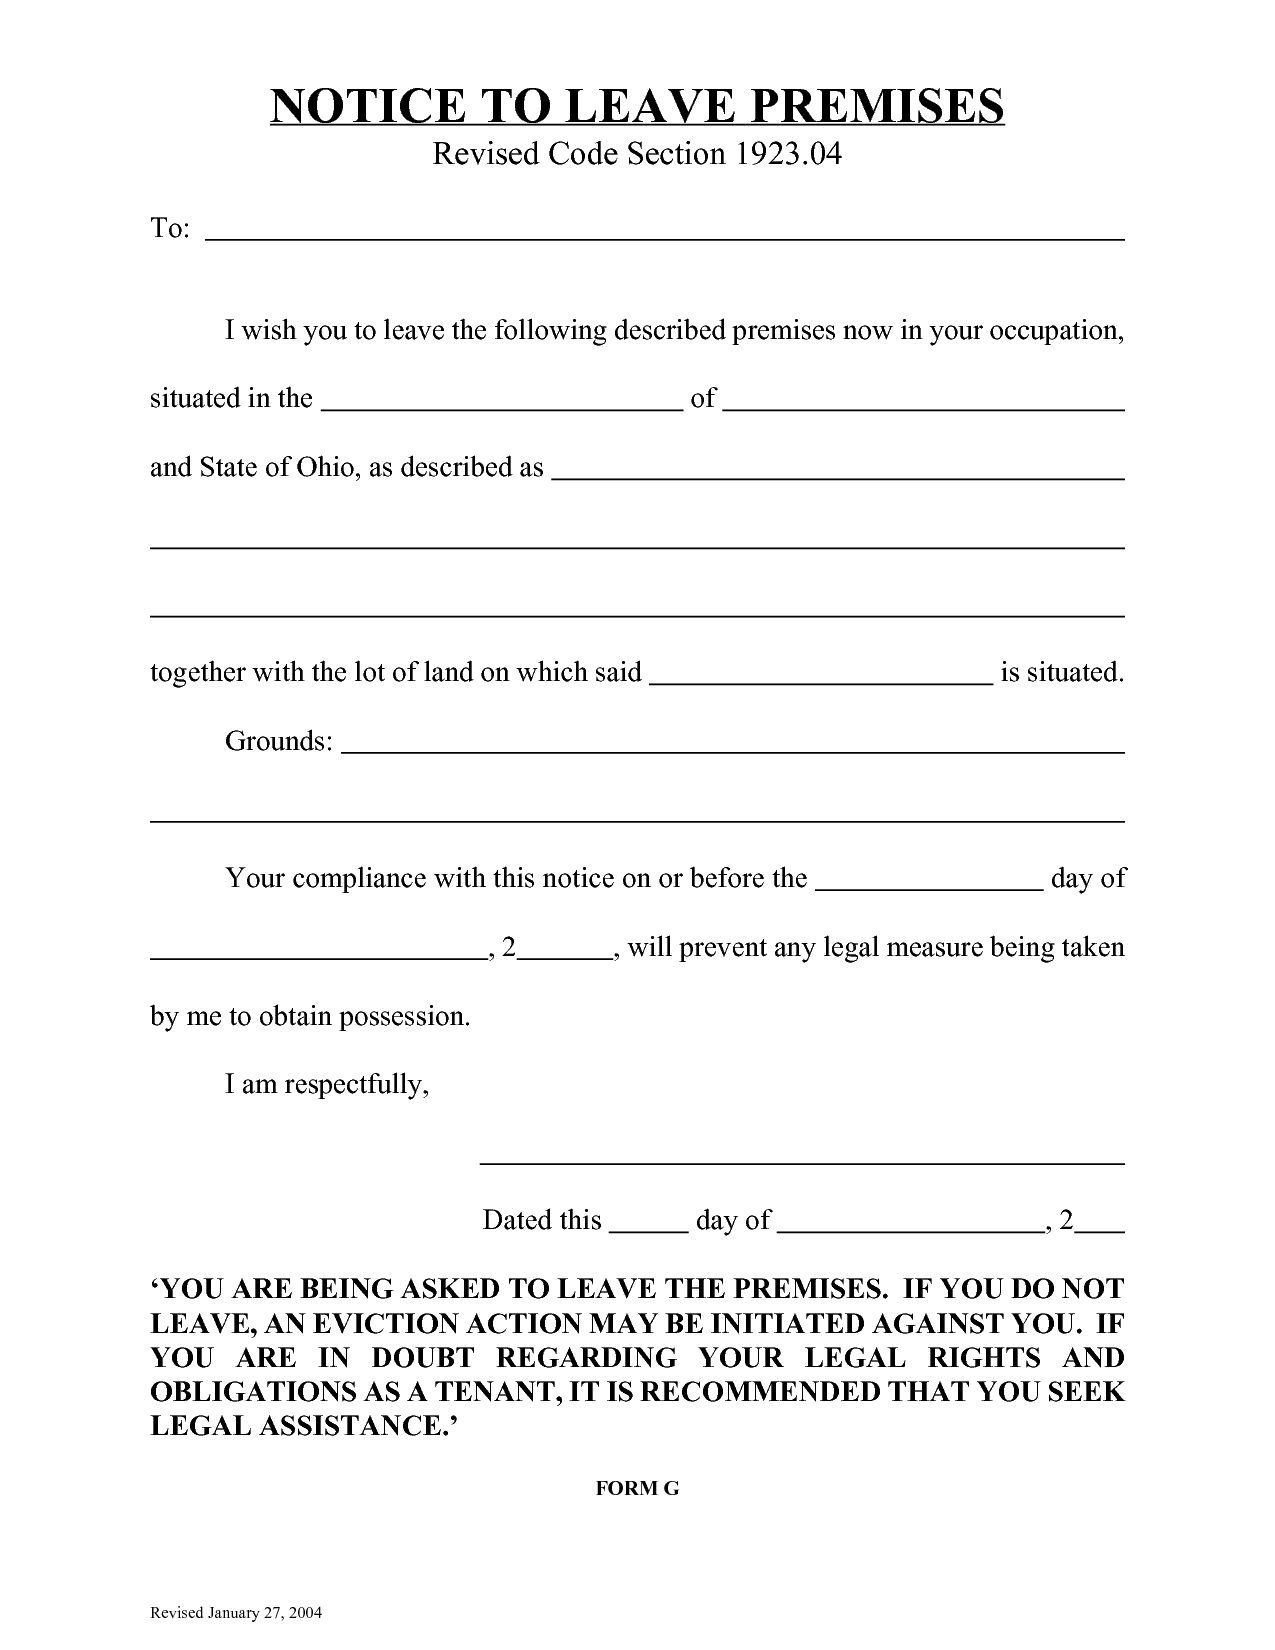 10 Best Images Of Eviction Notice Florida Form Blank Template Via 3 - Free Printable 3 Day Eviction Notice